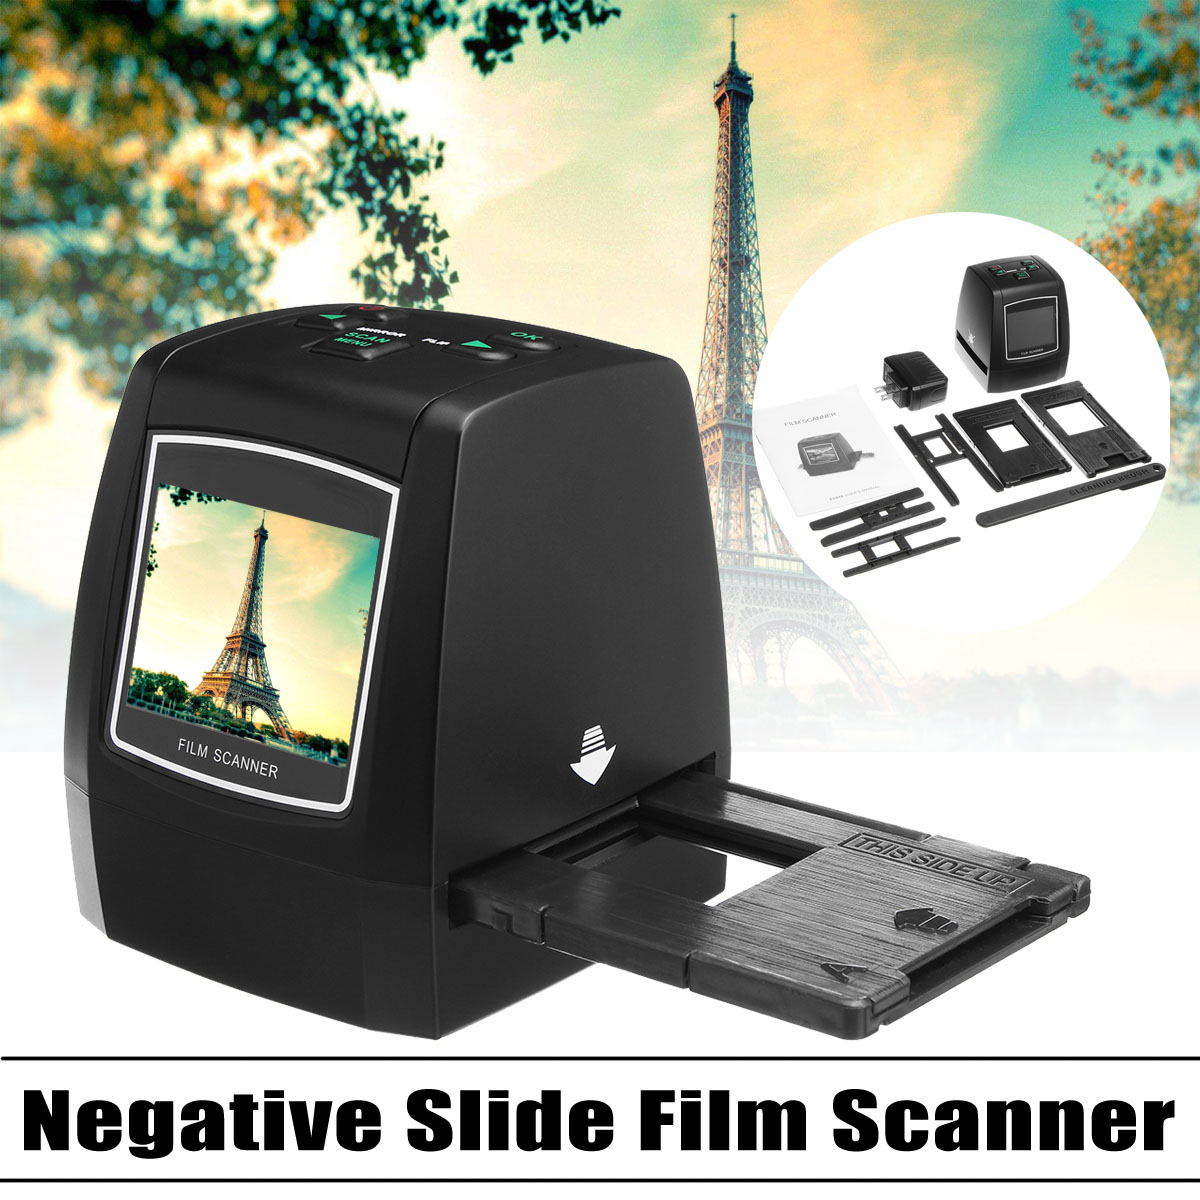 High Resolution 35mm 135/126/110/8mm Negative Slide Film Scanner Photo Digitalizer Analog to Digital File 14MP/22MP bfq262a to 126